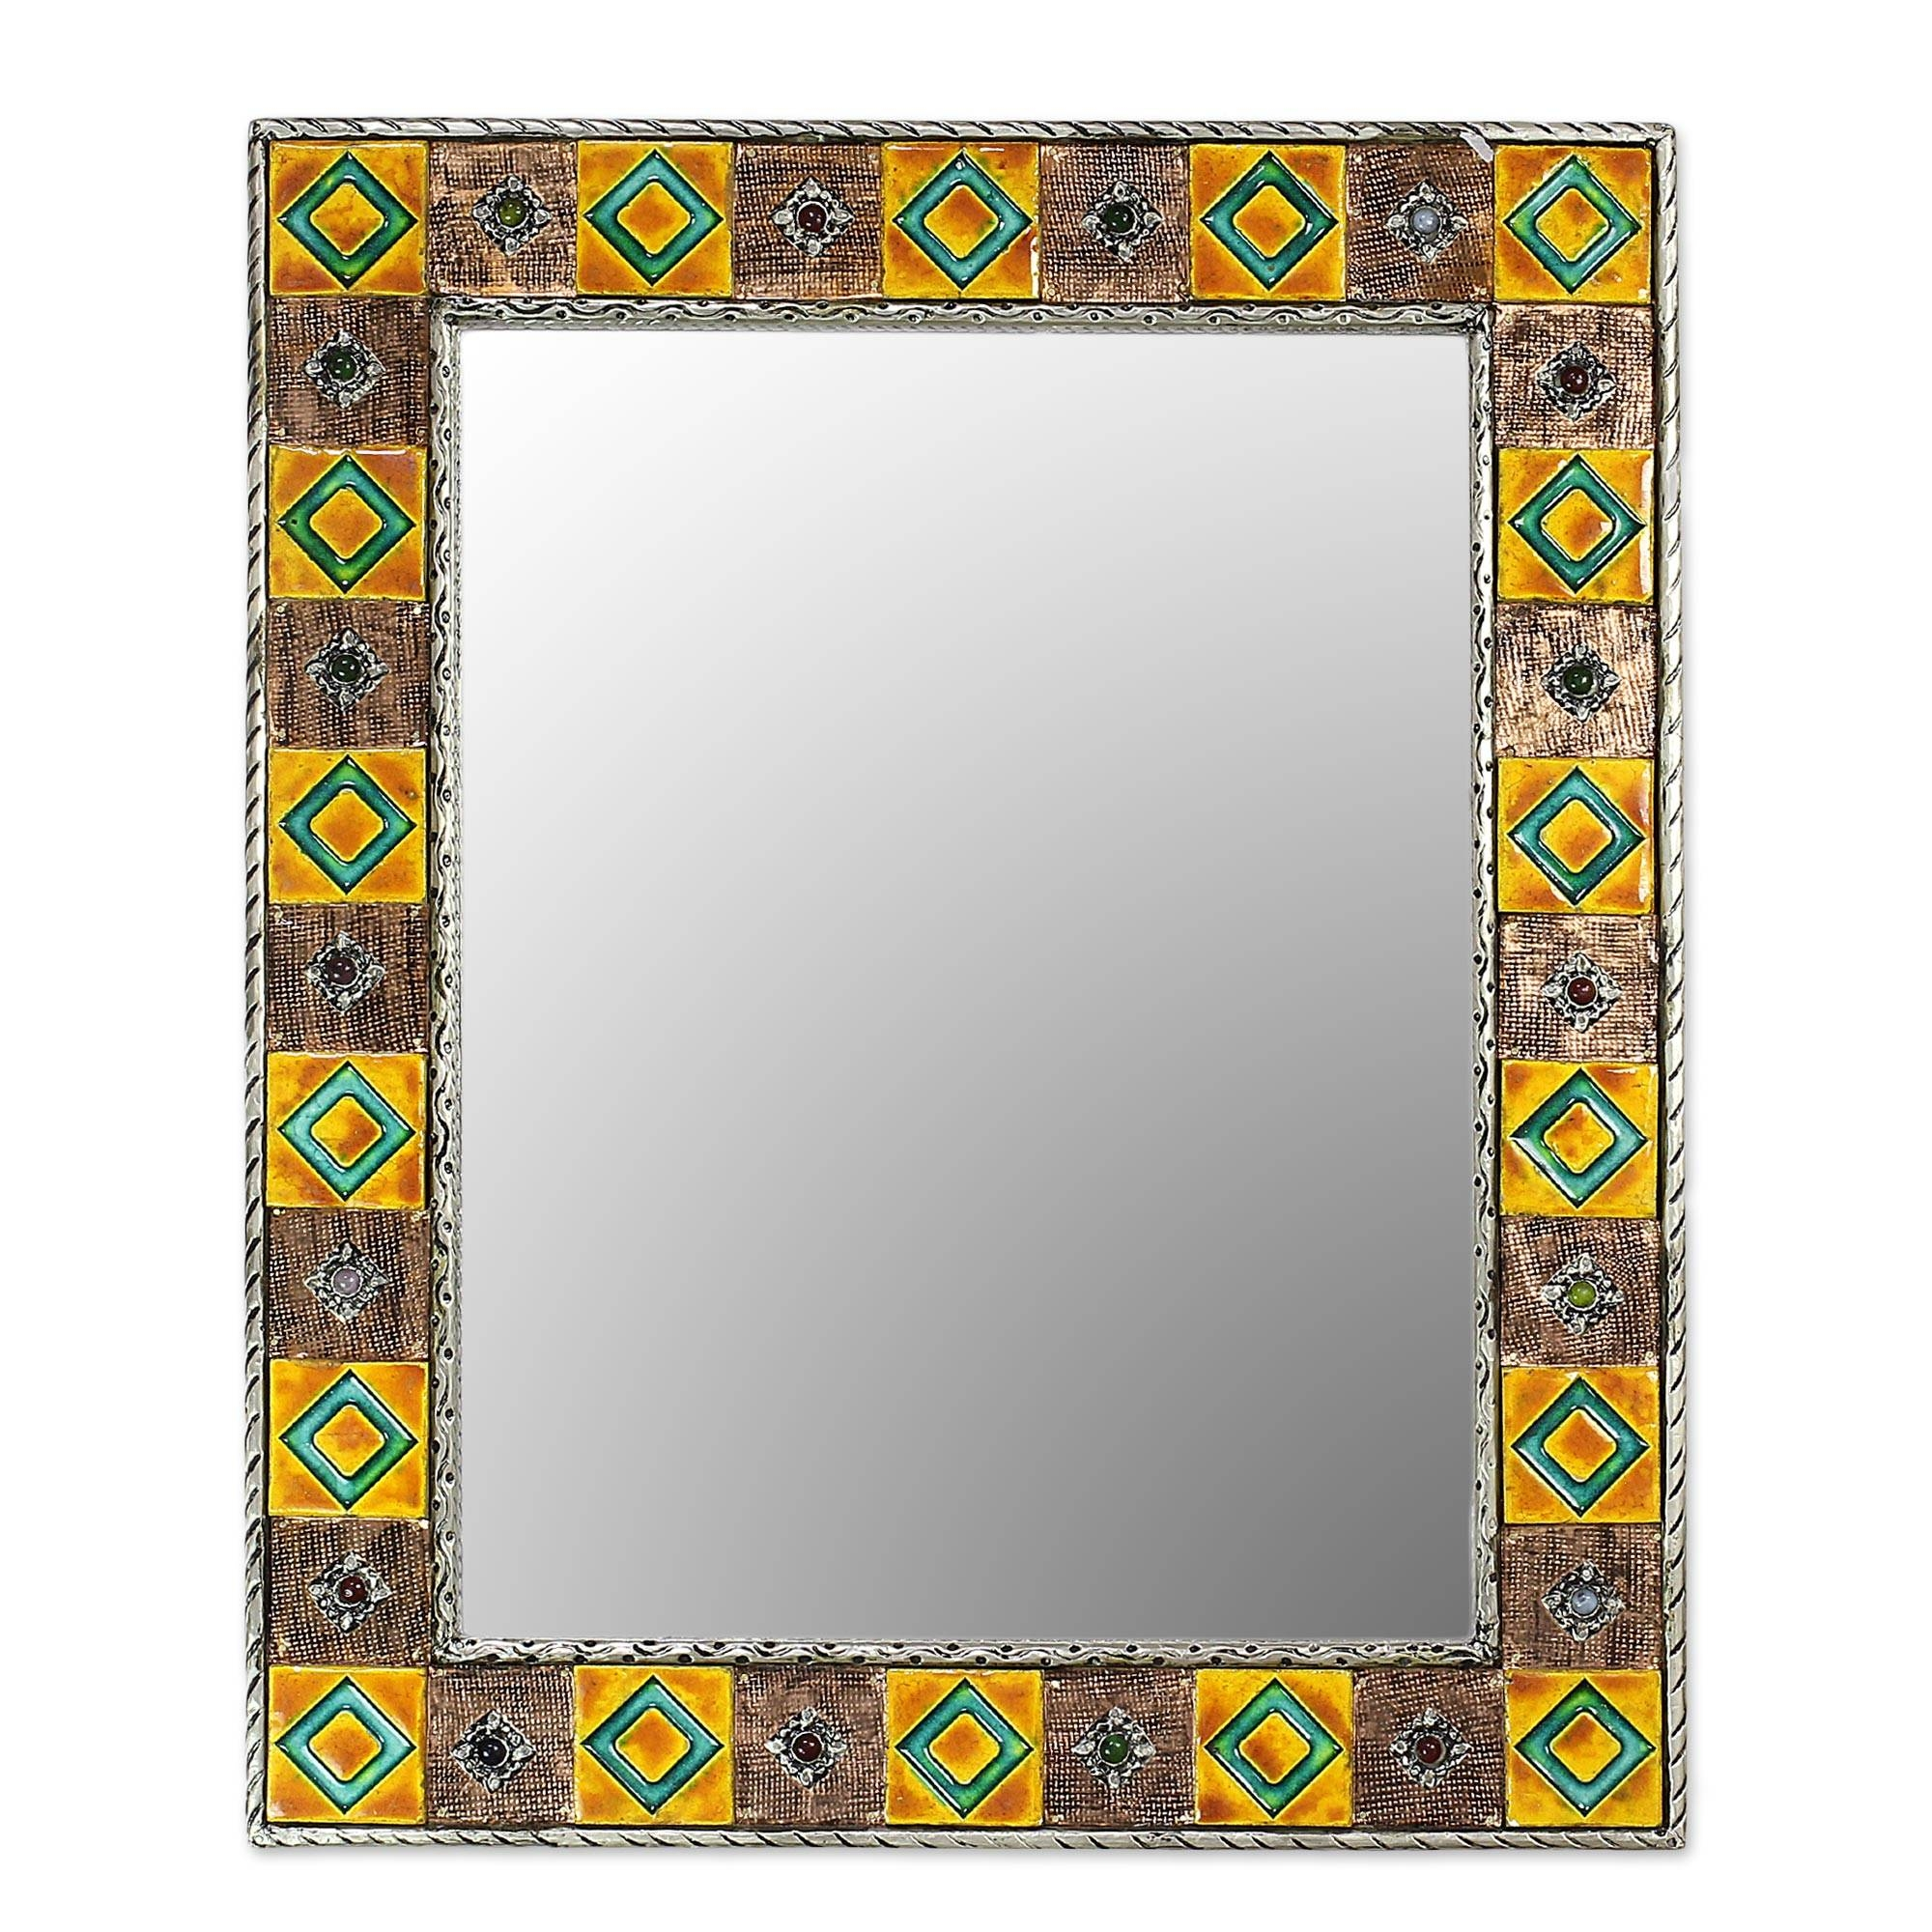 Repoussé Copper Mirror India Ceramic Wall Art Handmade - Autumn with regard to Antique Style Wall Mirrors (Image 21 of 25)